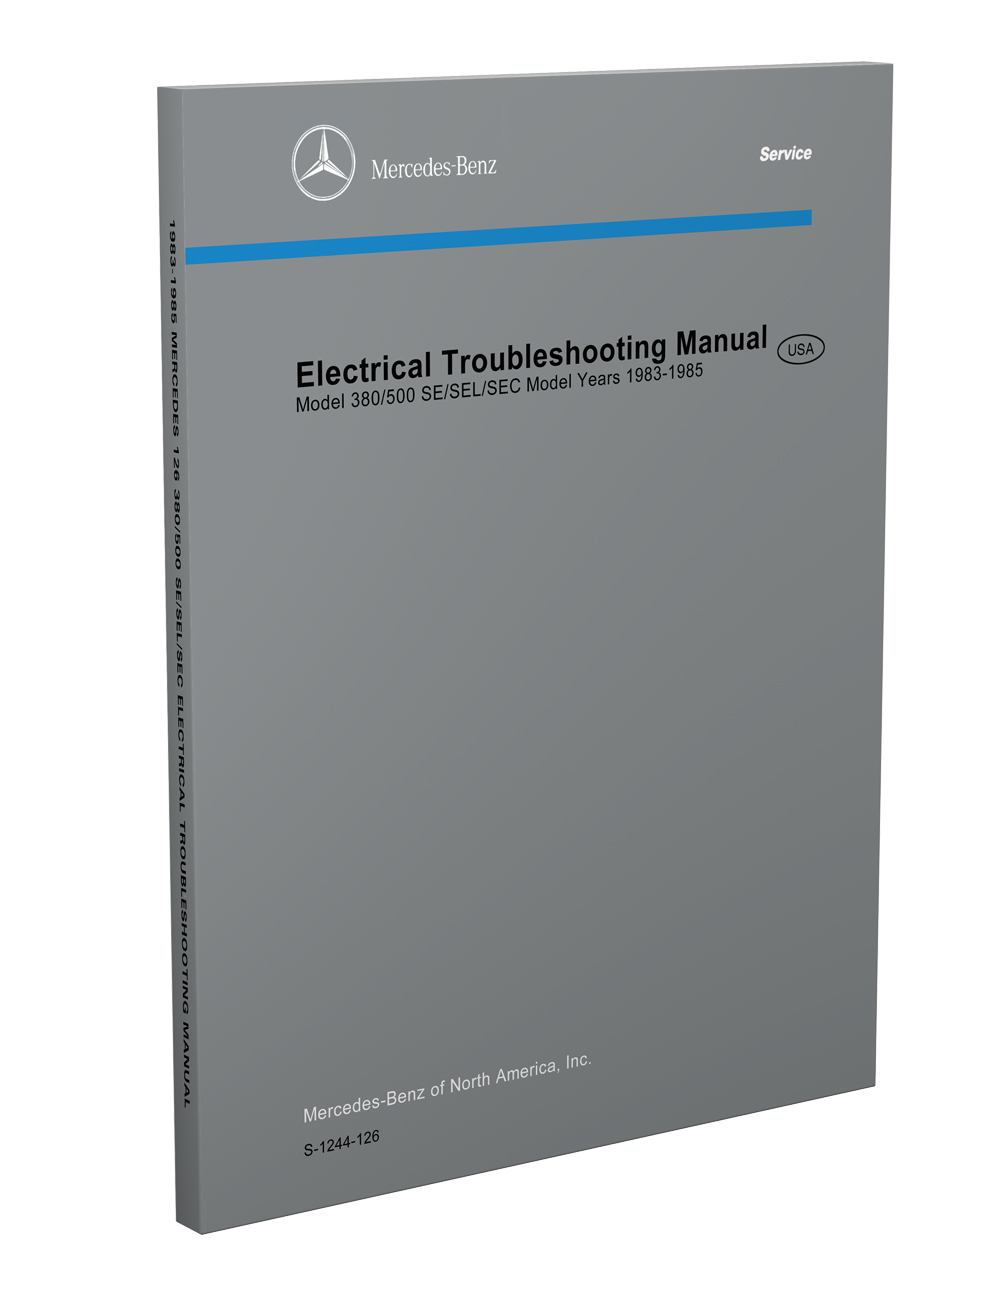 1983-1985 Mercedes Electrical Troubleshooting Manual Reprint  380/500 SE SEC SEL